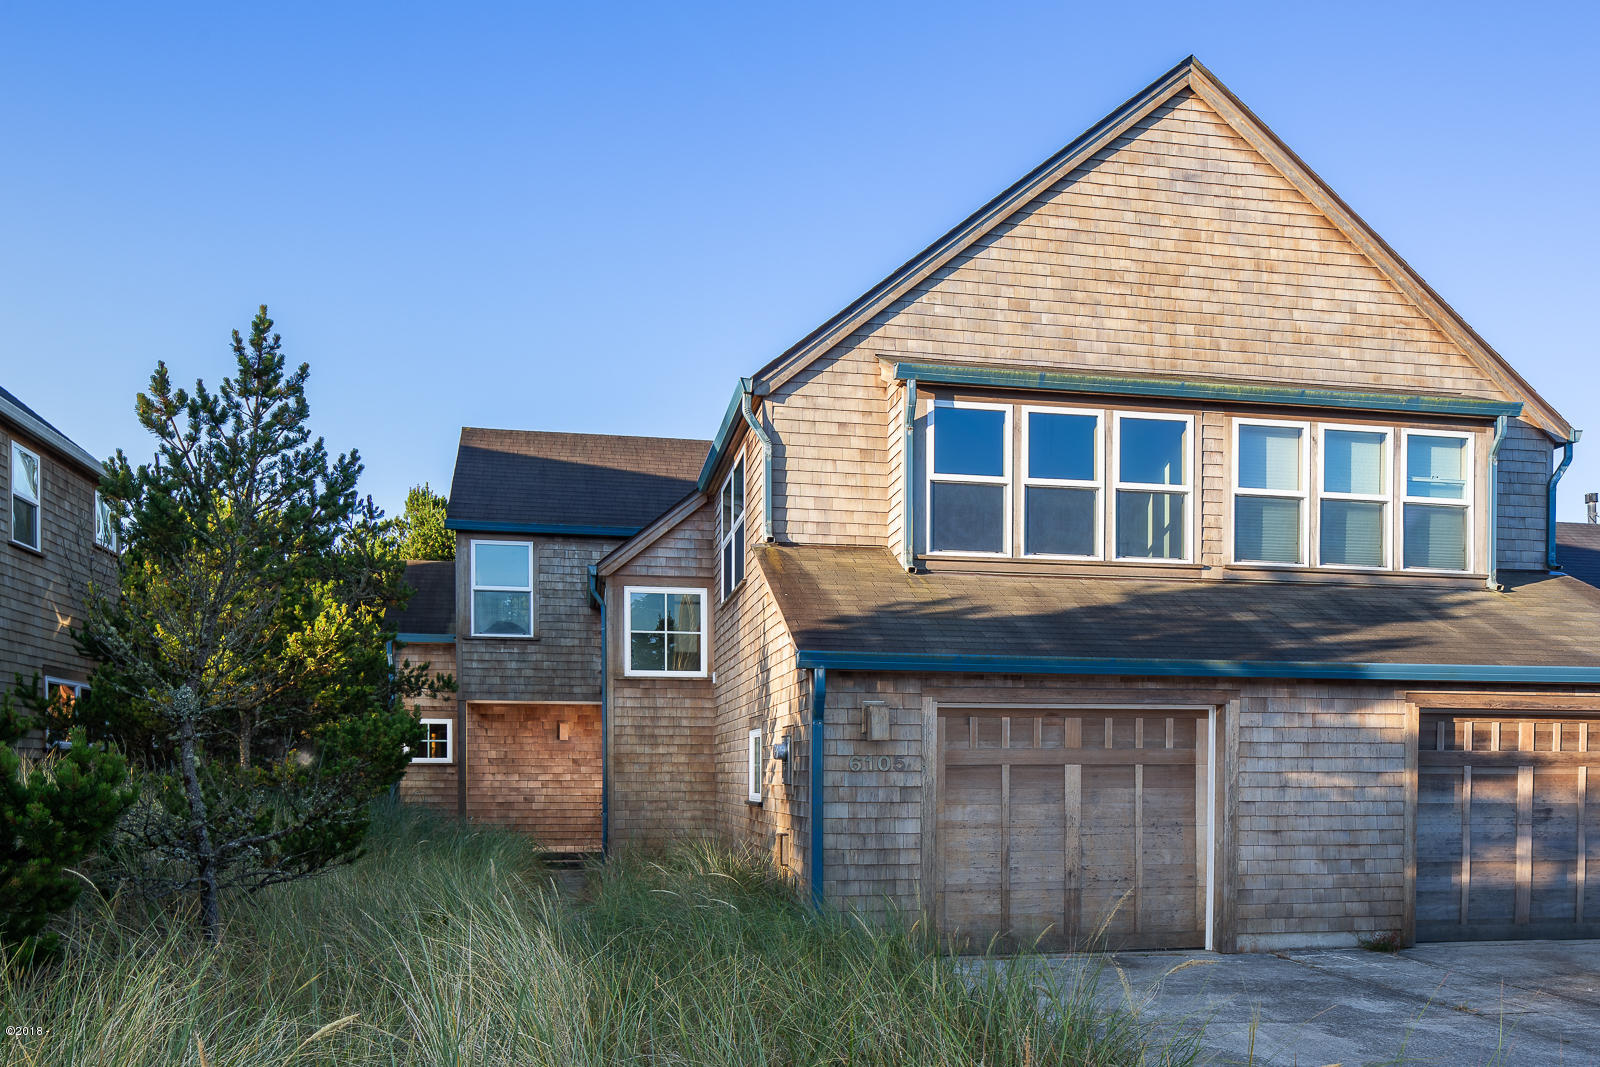 6105 Beachcomber Lane, Pacific City, OR 97135 - 6105BeachcomberLane-01